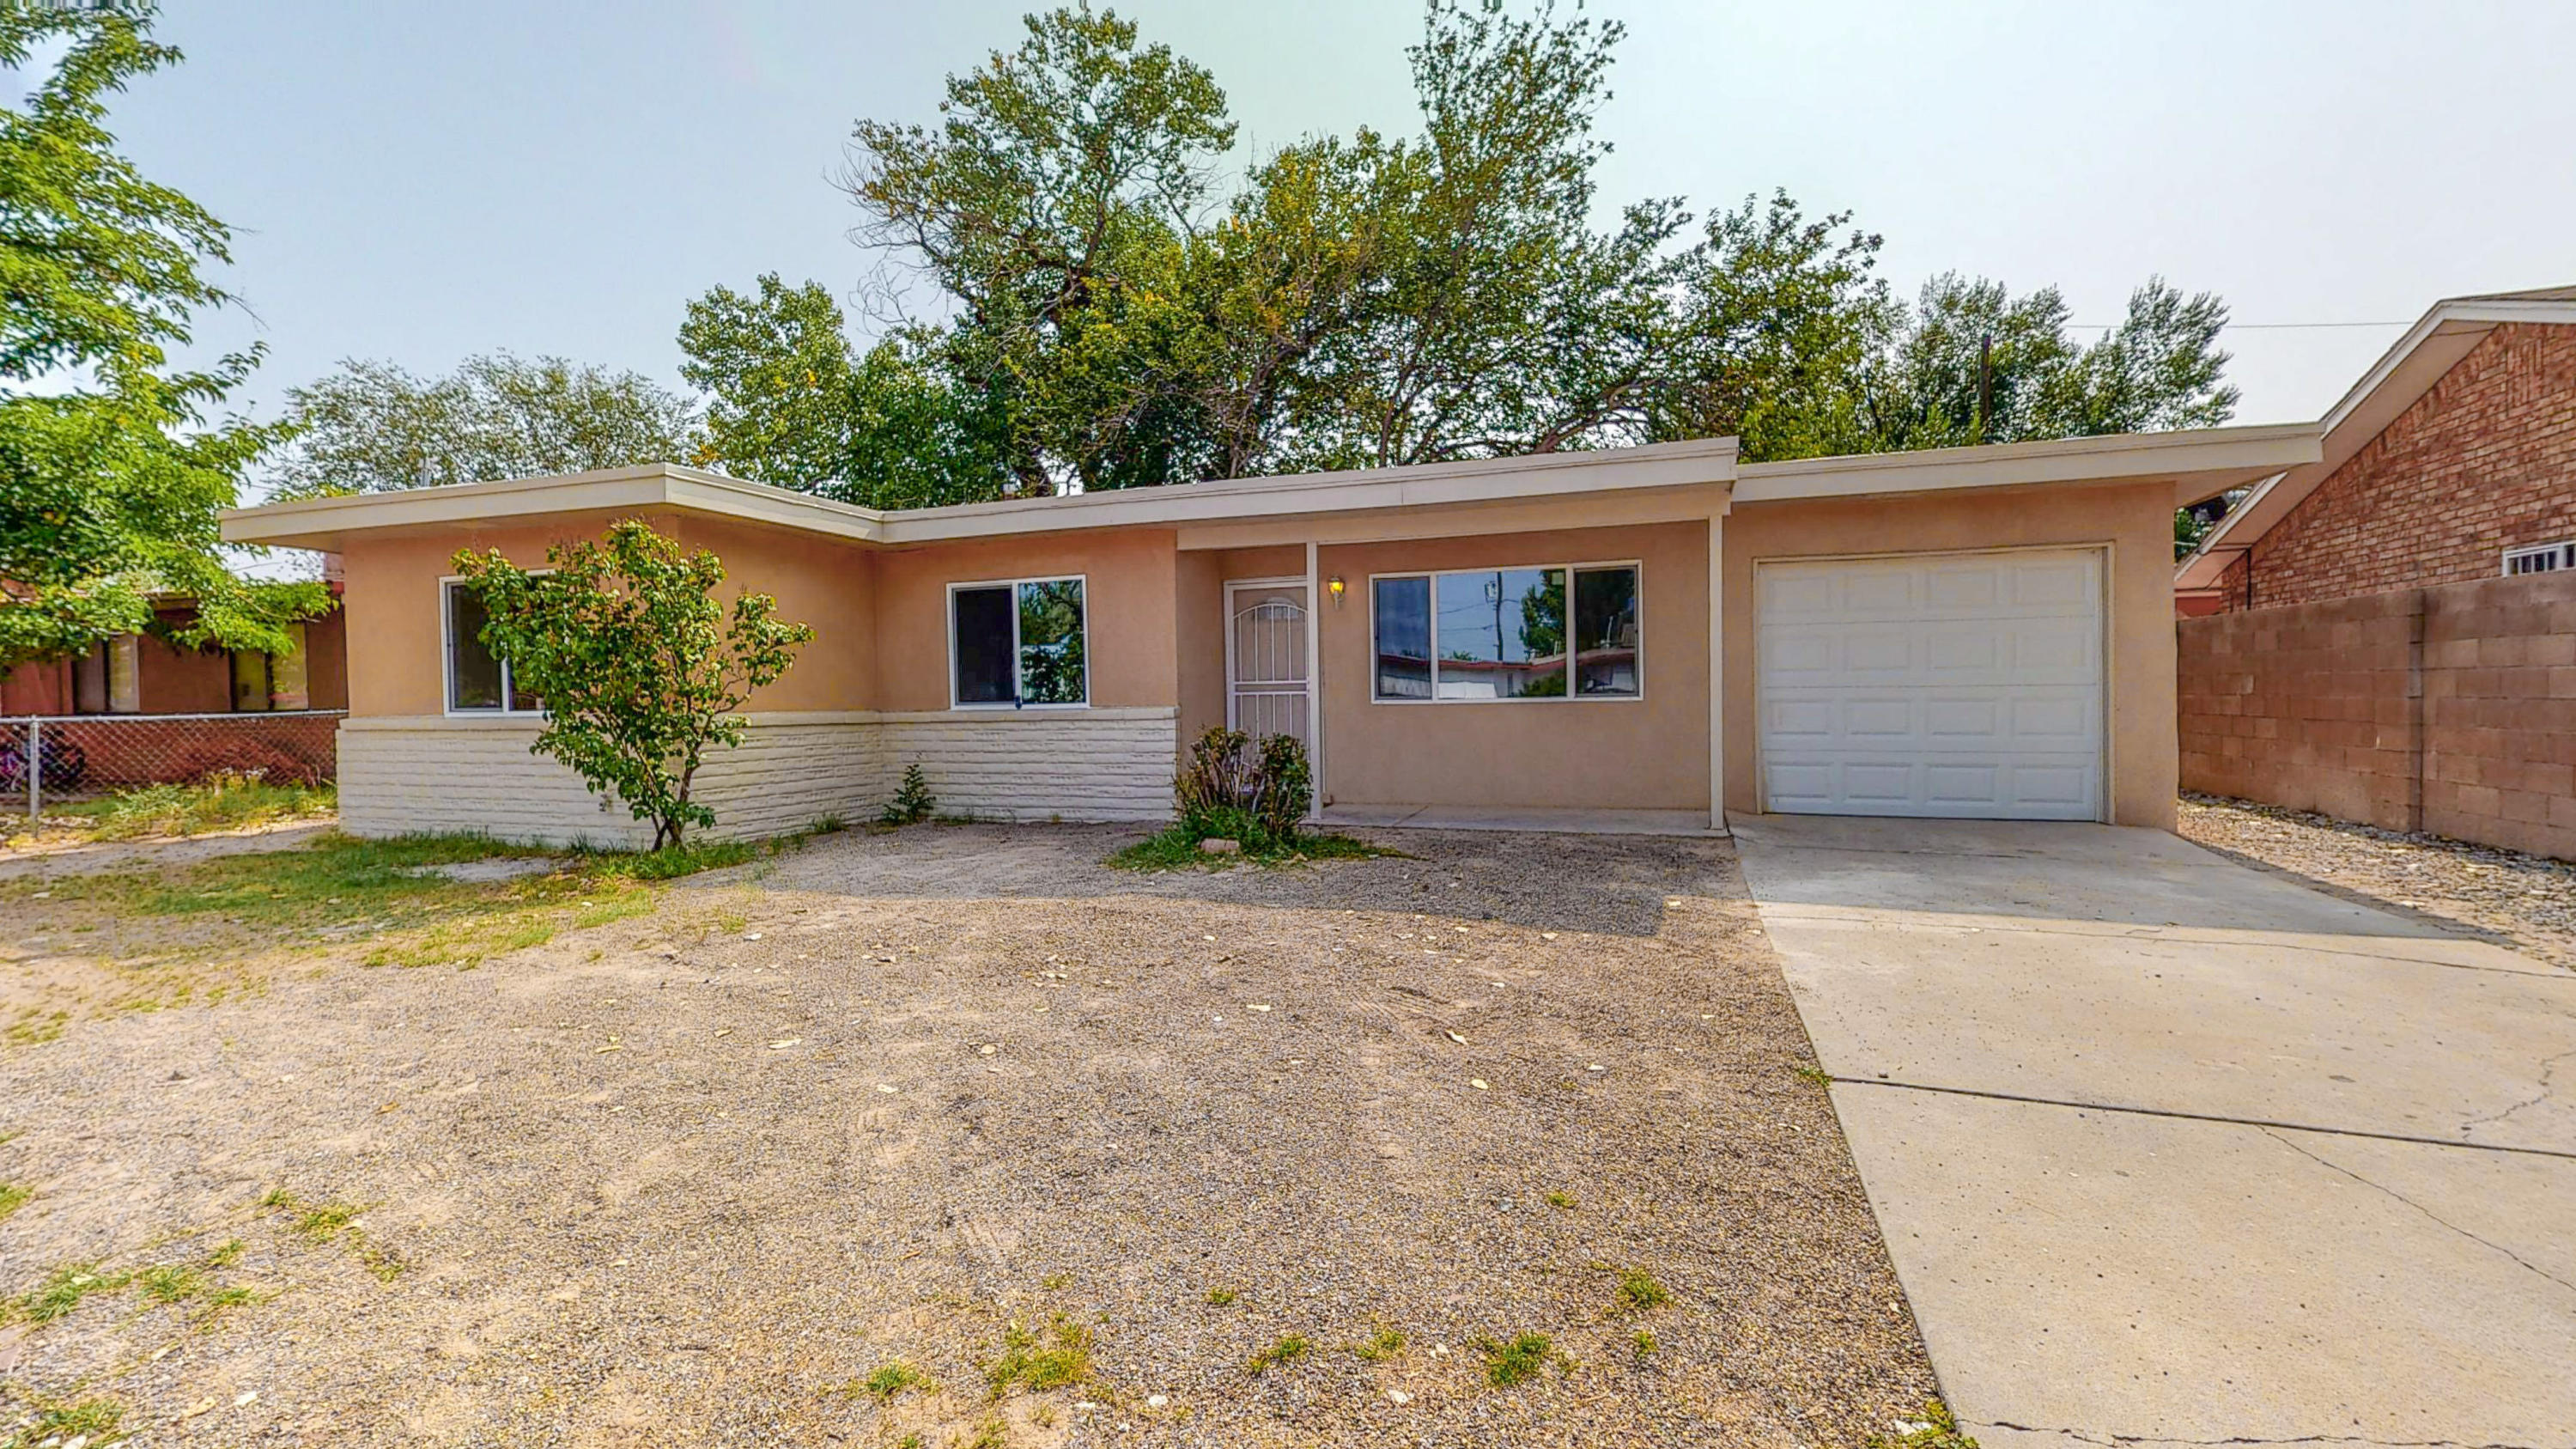 This 4 bed, 2 bath South Valley home features NEW! New Roof! New Stucco! New Windows! New Bathrooms! New Refrigerated Air! New Heater! New Water Heater! New Appliances! New Garage Door! I could go on! Come see it for yourself today! This could be your NEW Home!